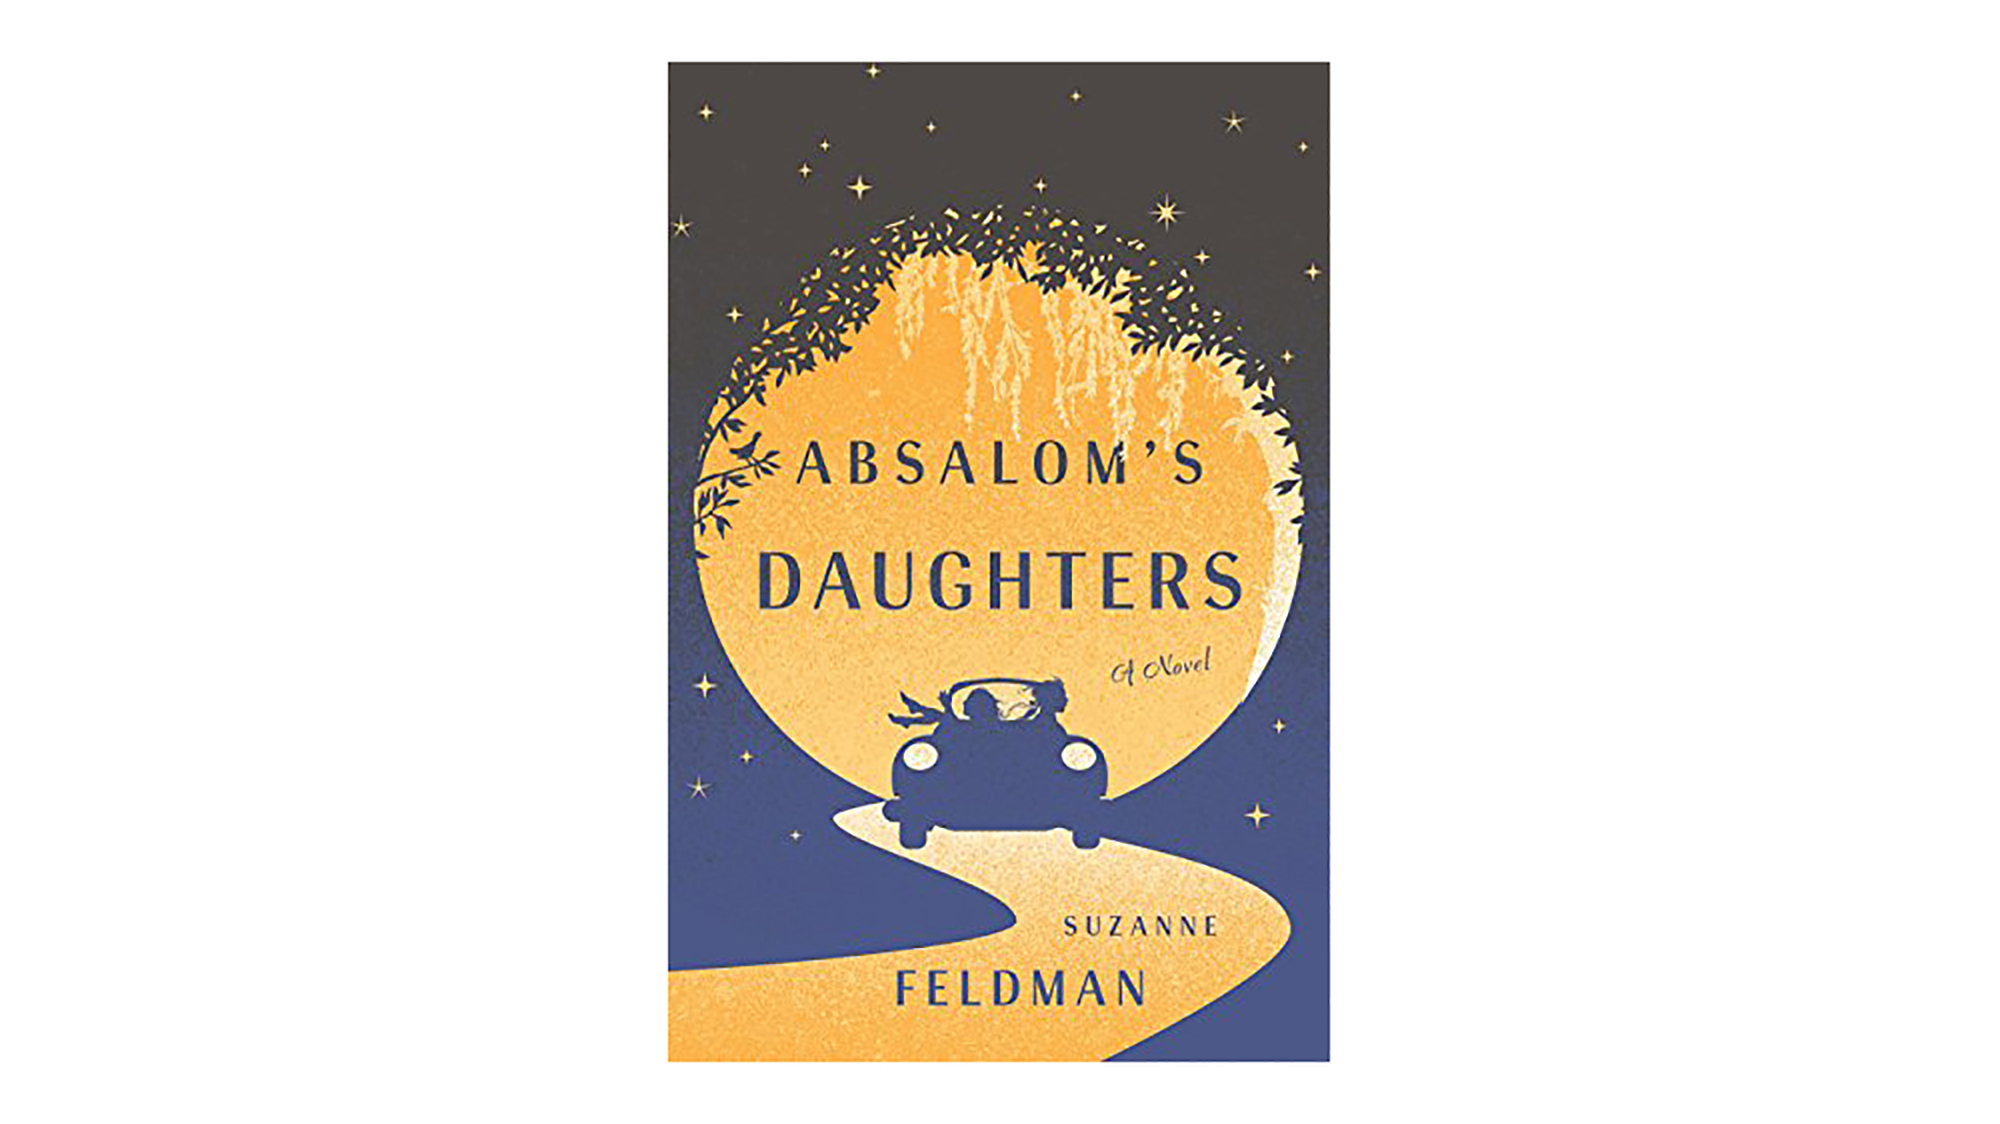 Absalom's Daughter by Suzanne Feldman